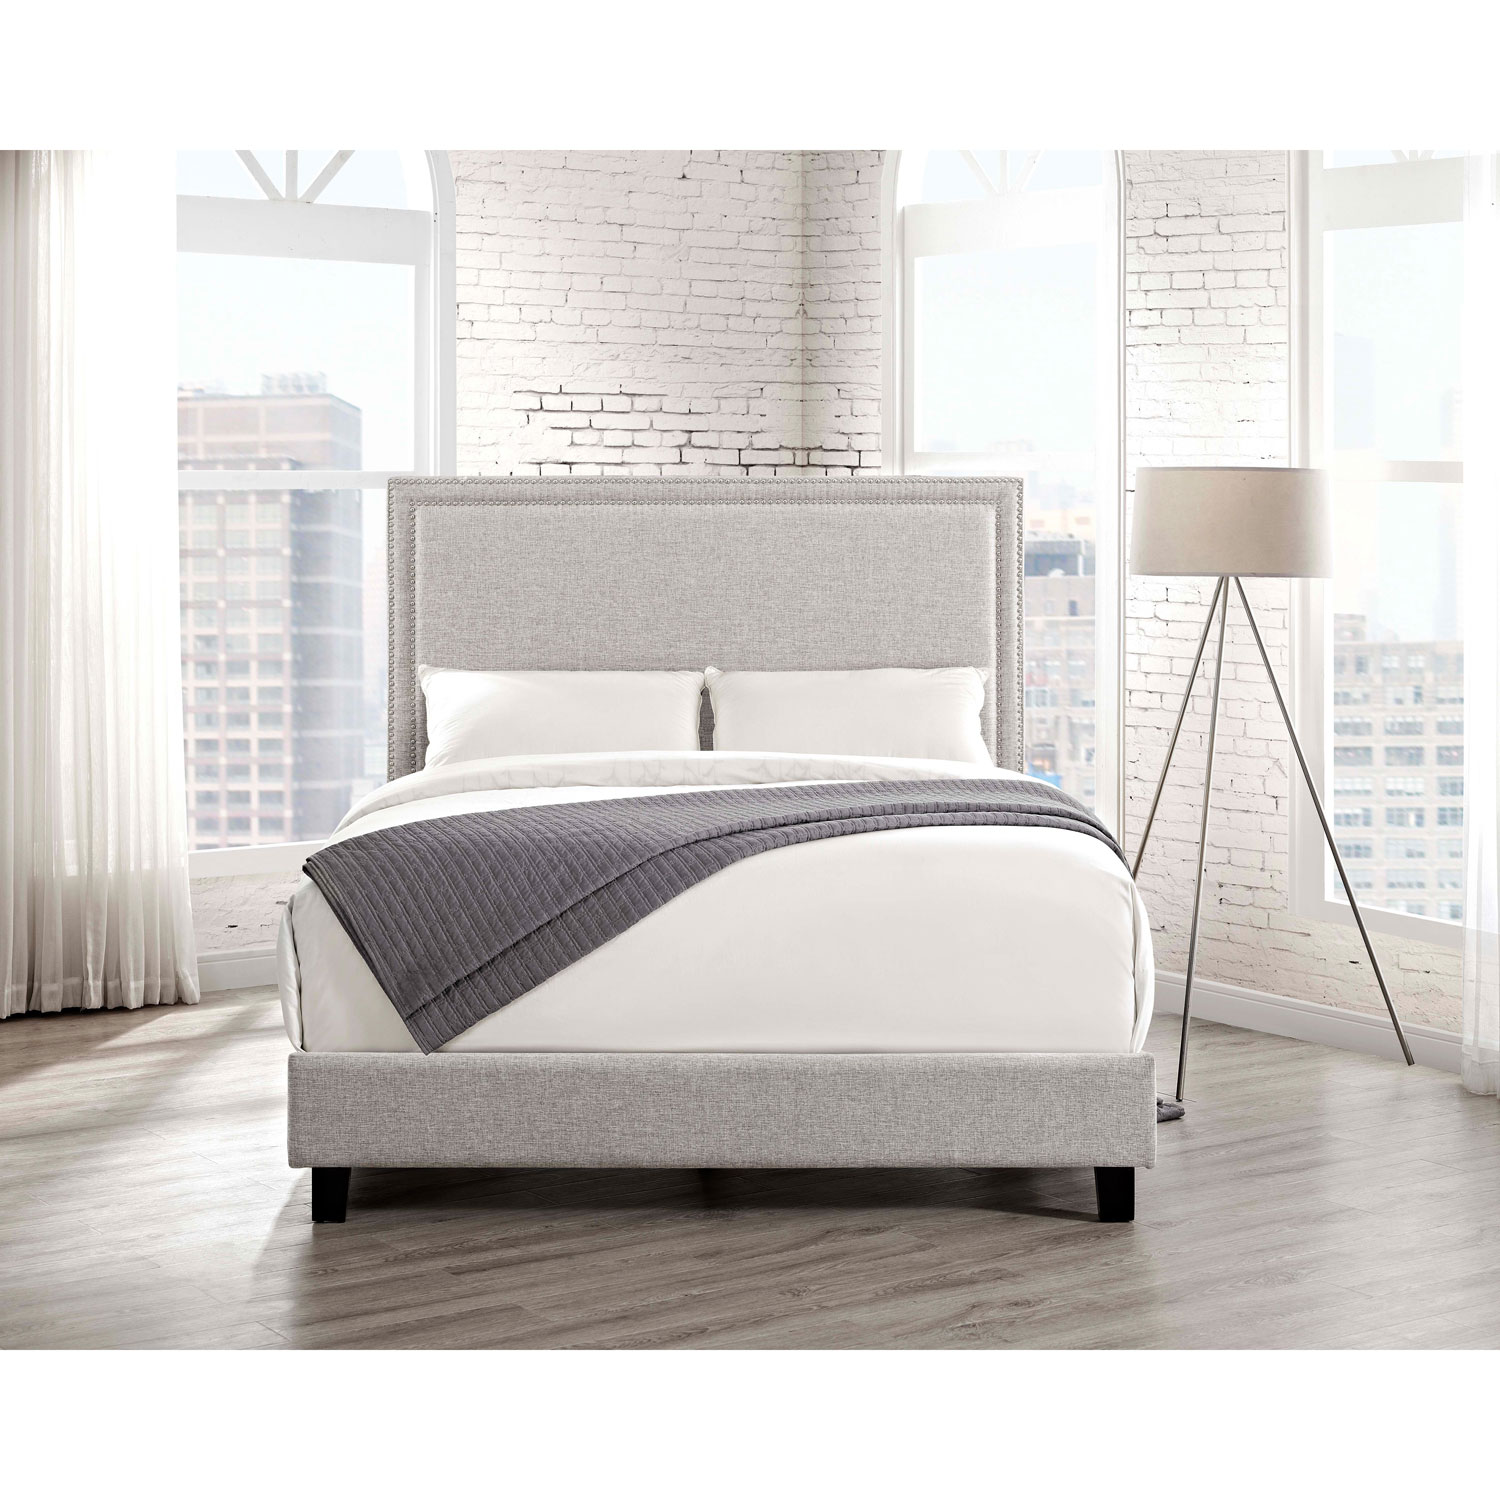 Queen Bed Frames For Sale Mississauga